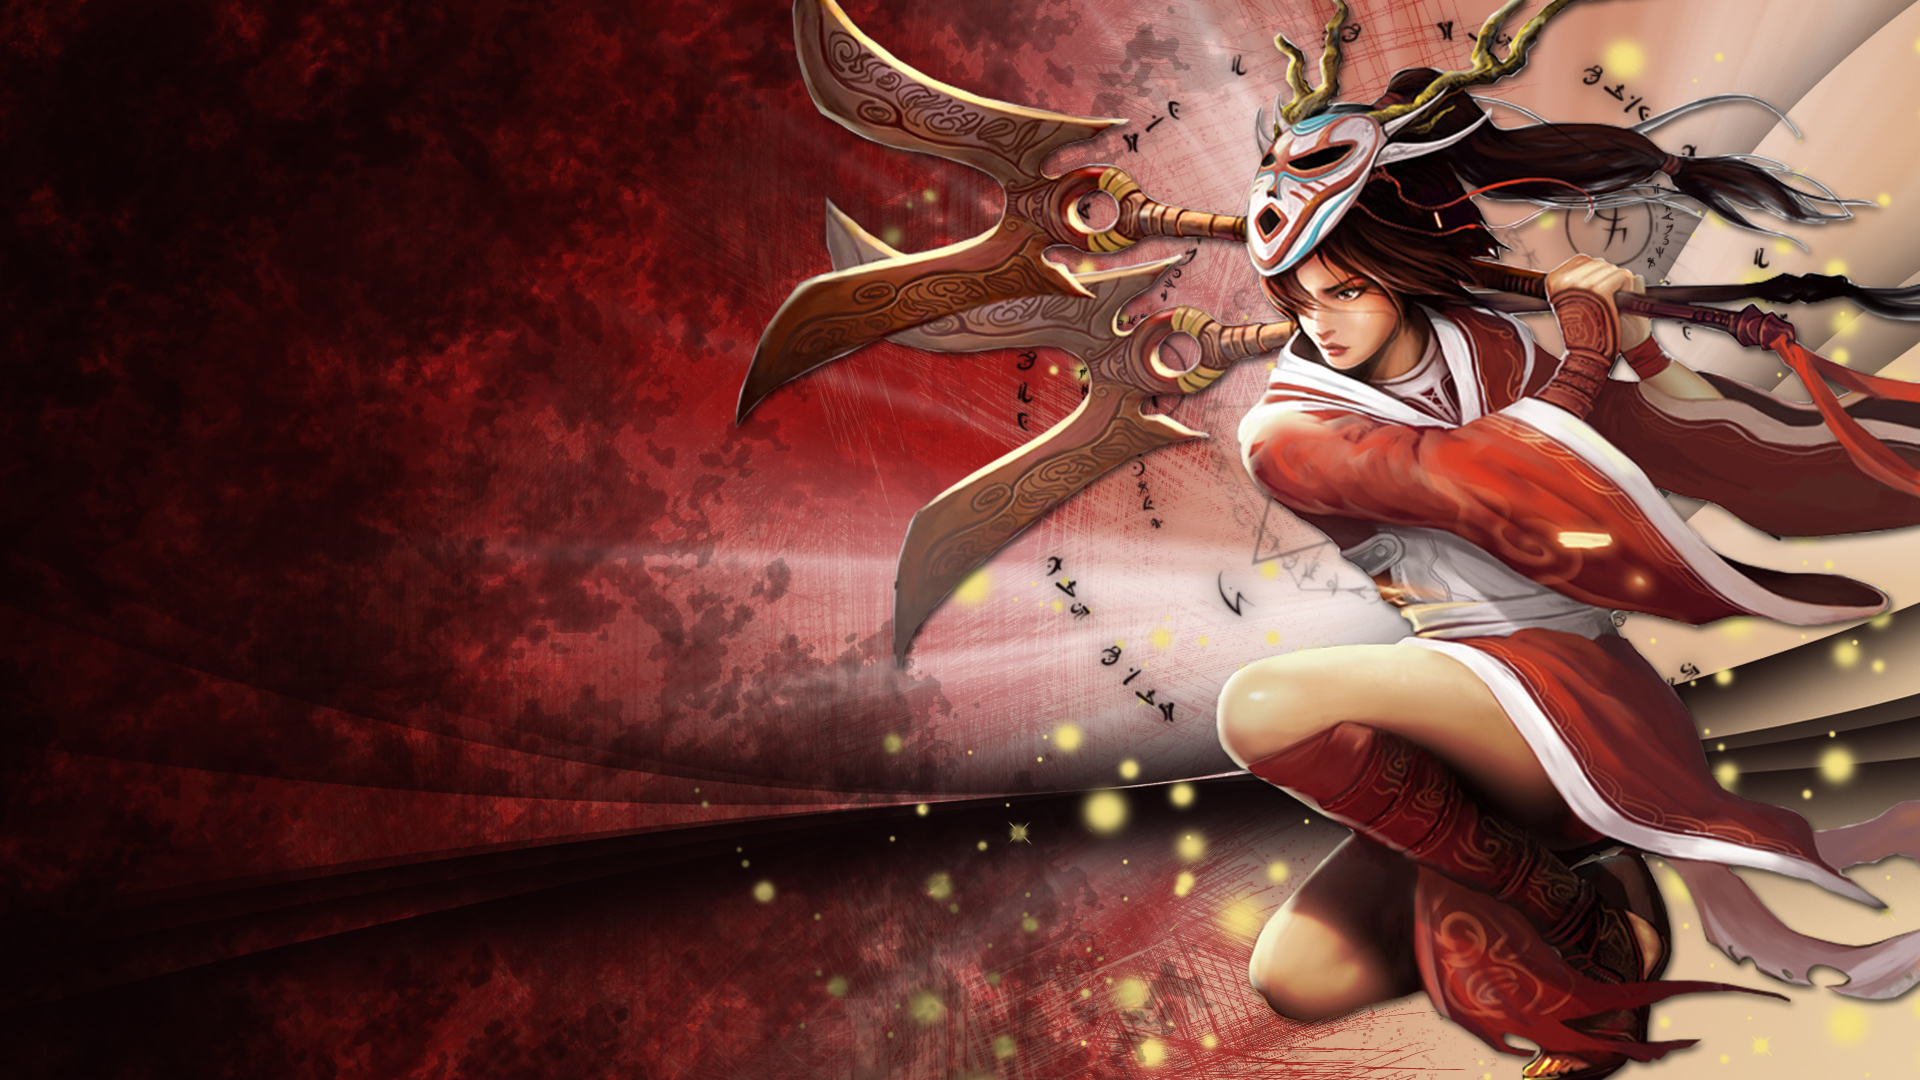 wp___bloodmoon_akali__textless__by_ikeiko-d8967tq